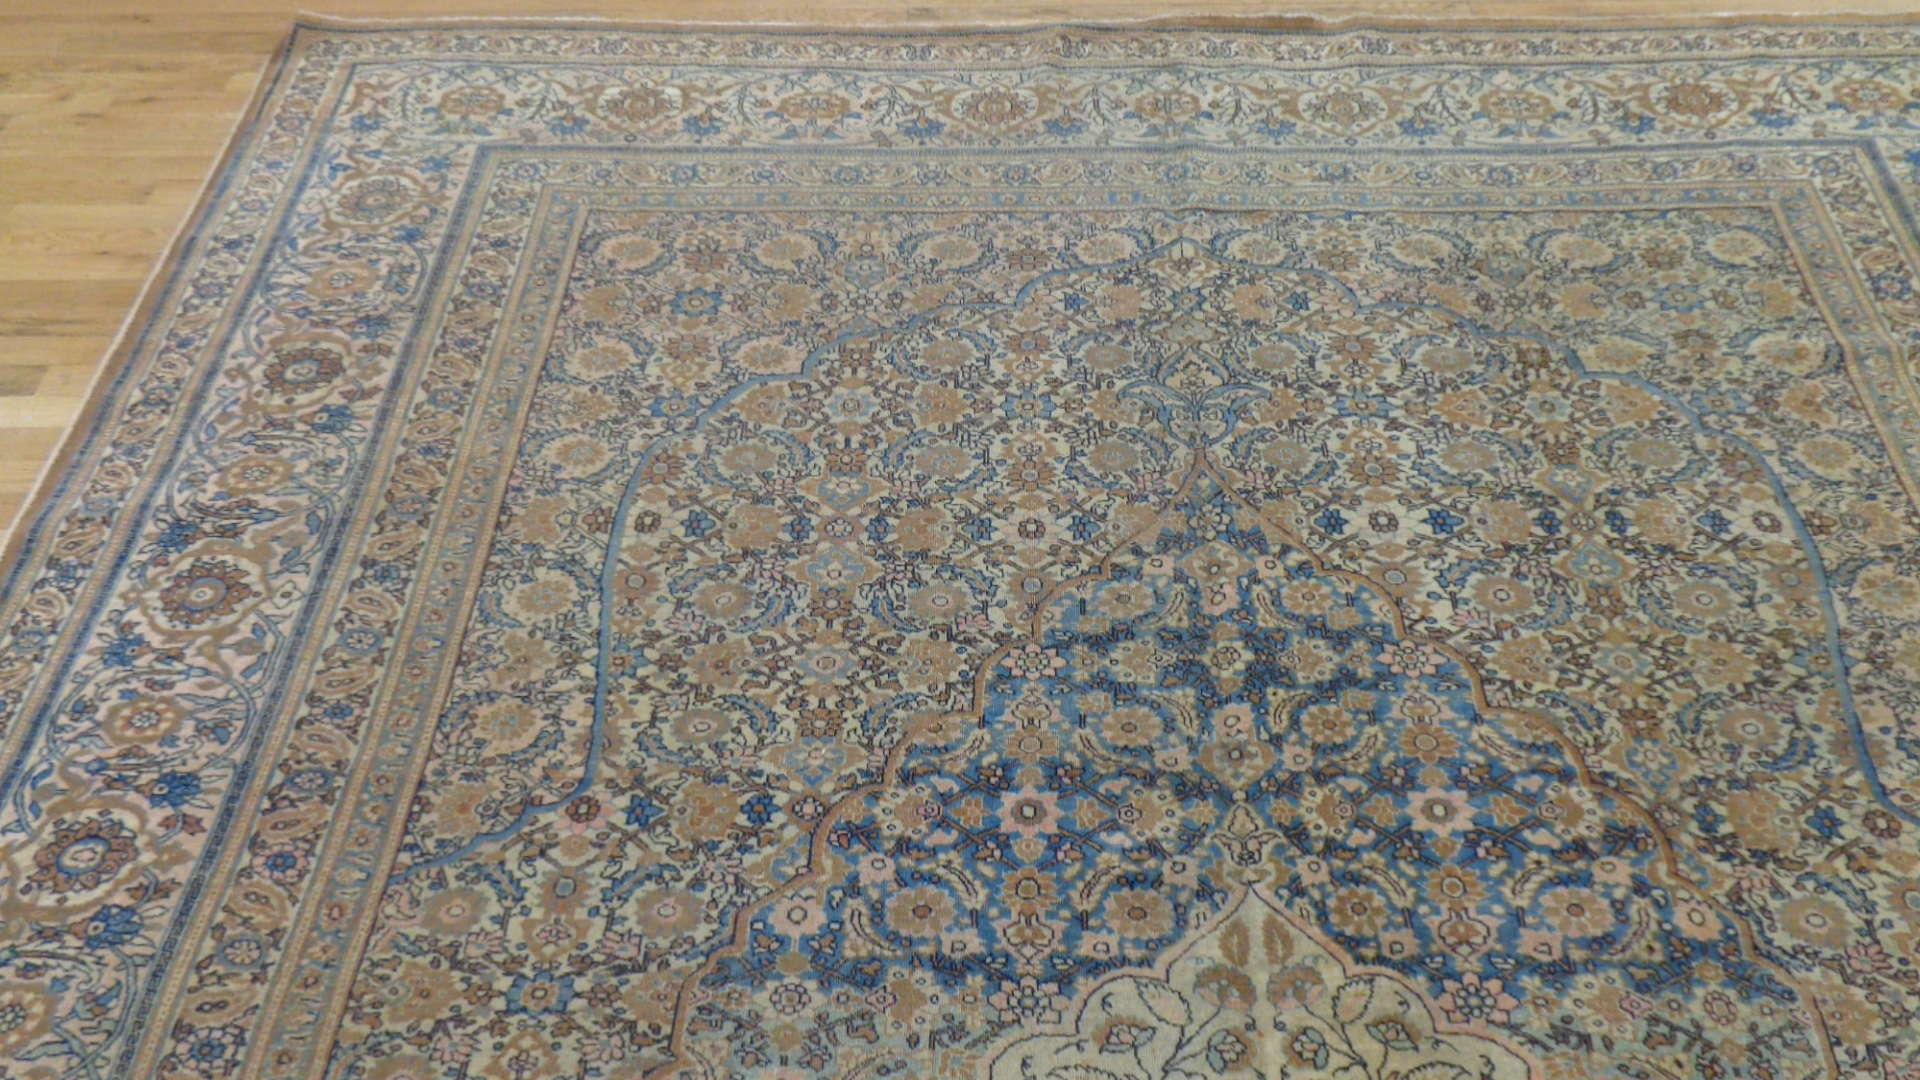 24844 antique persian haj jalili tabriz rug 9,6x13,1-1